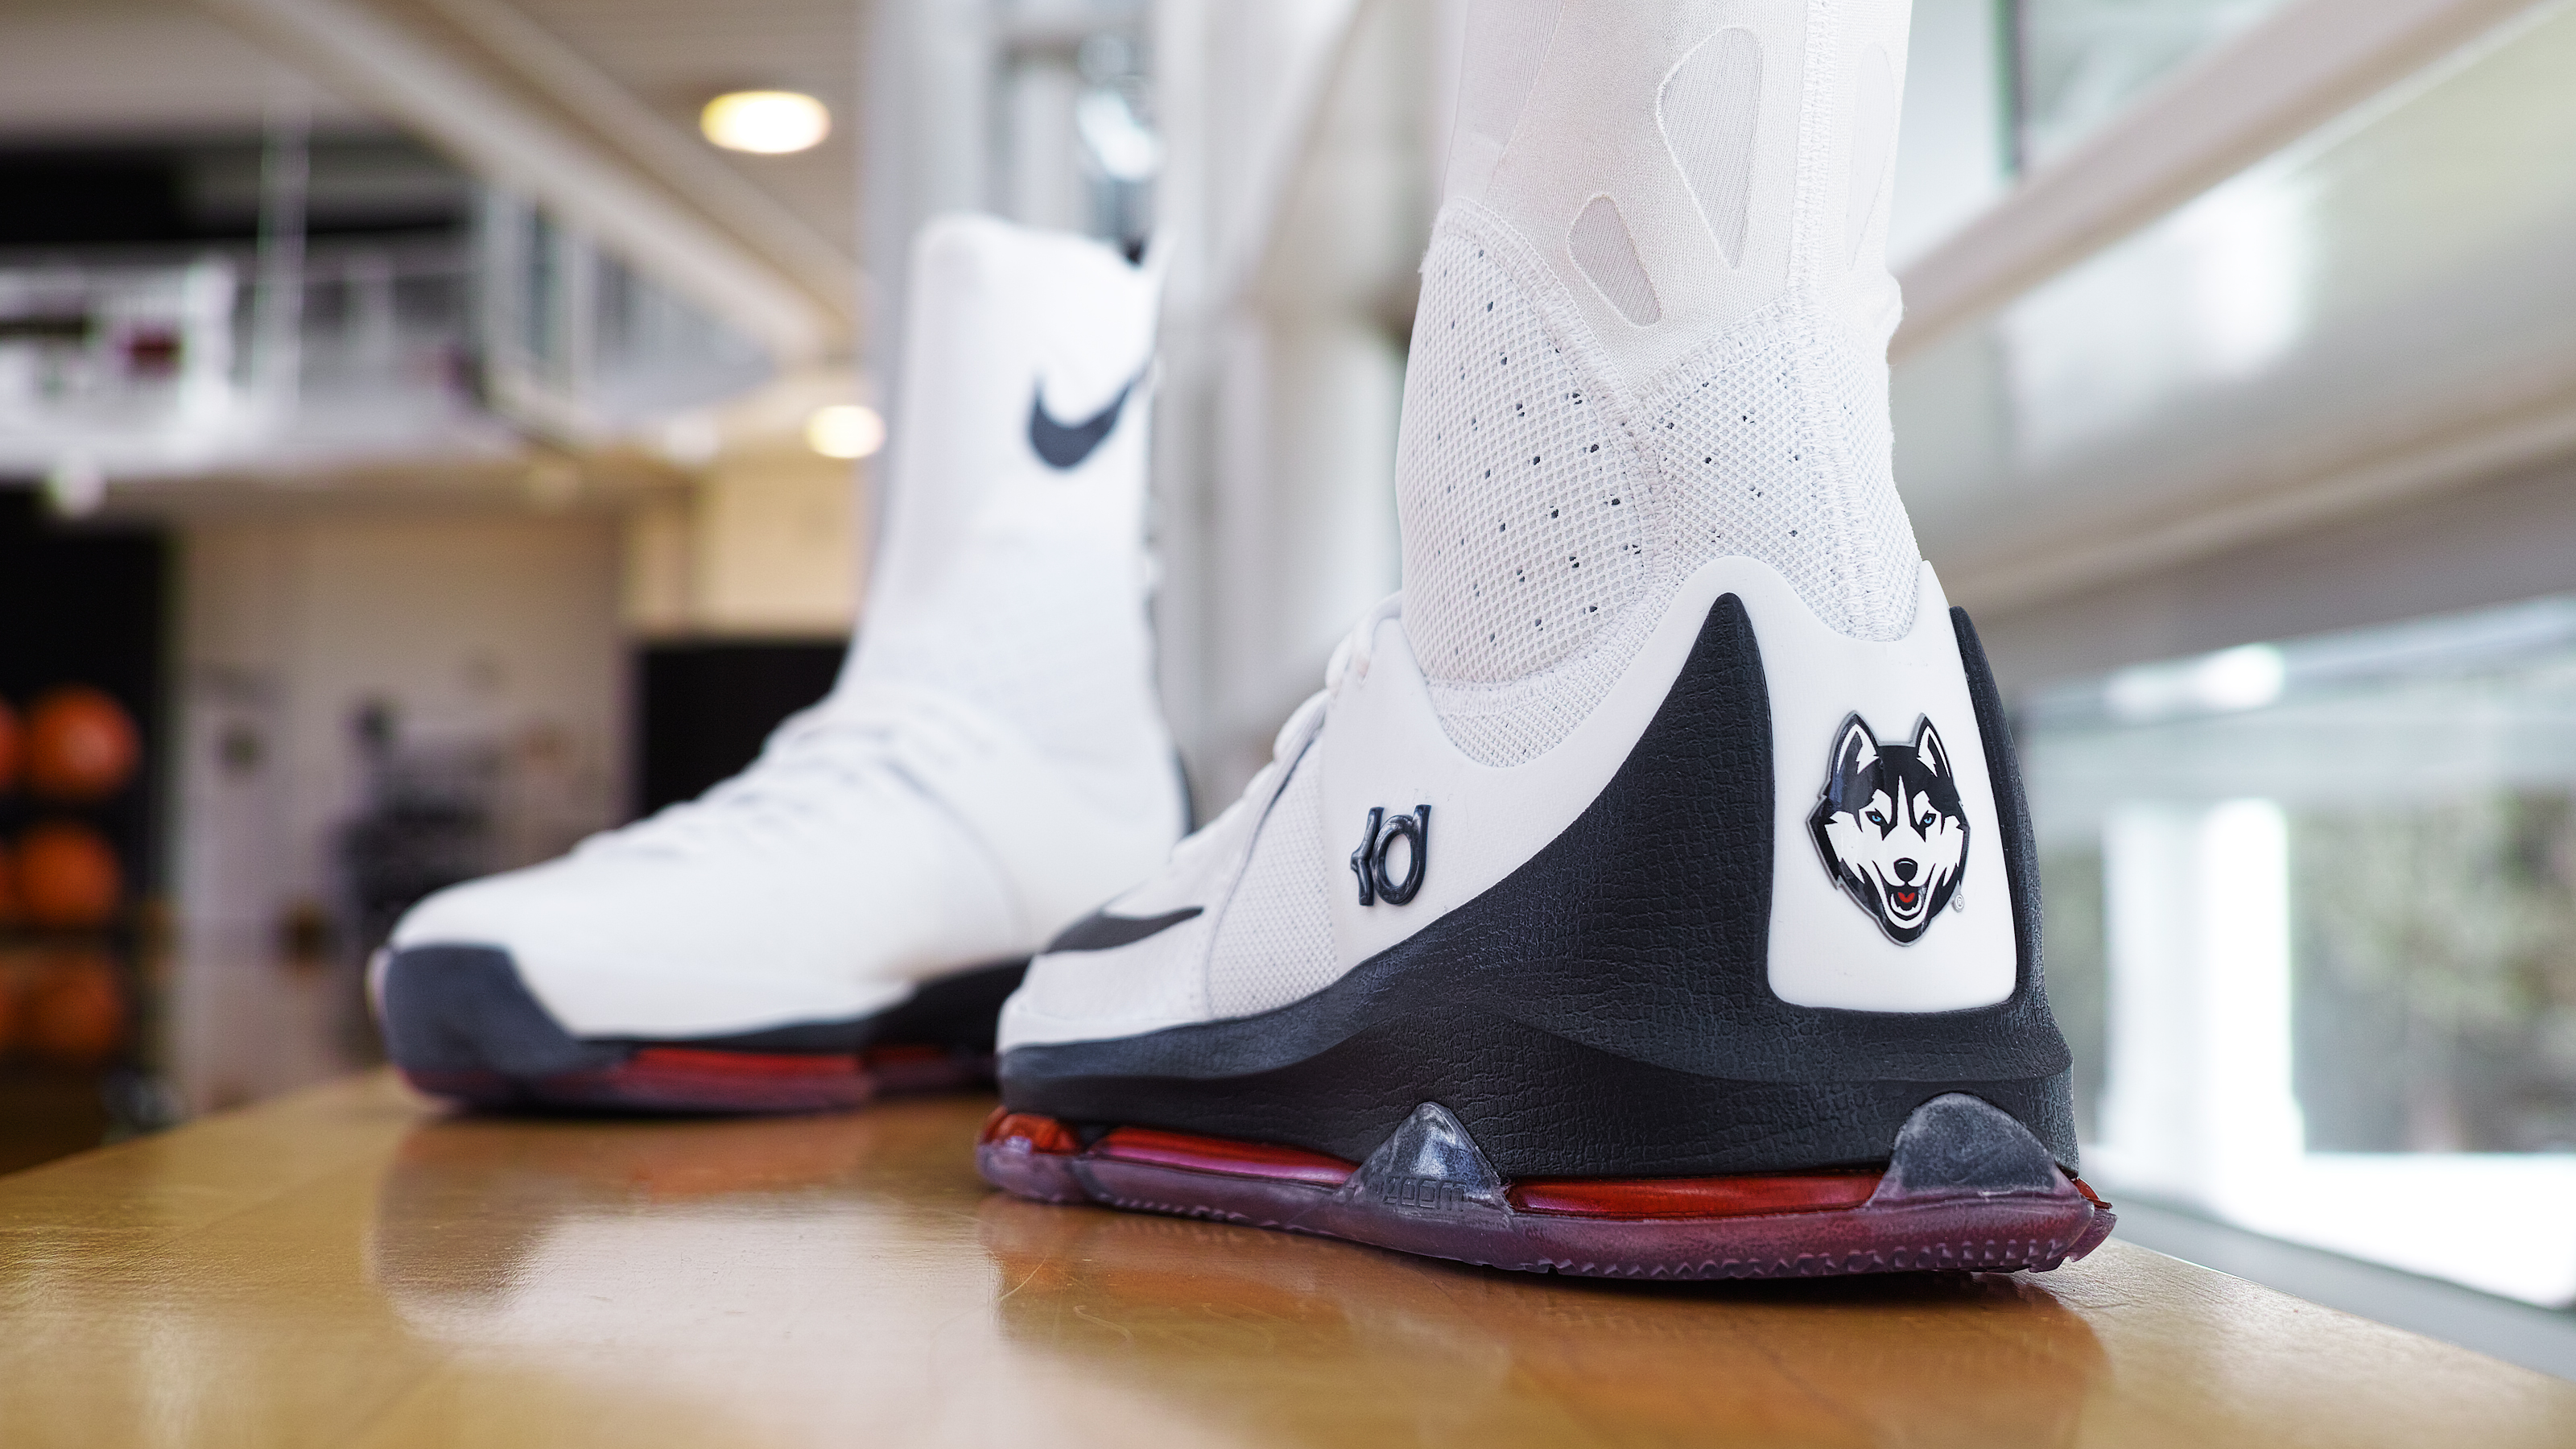 ... the latest vapormax jordan cortez air max and other sneaker